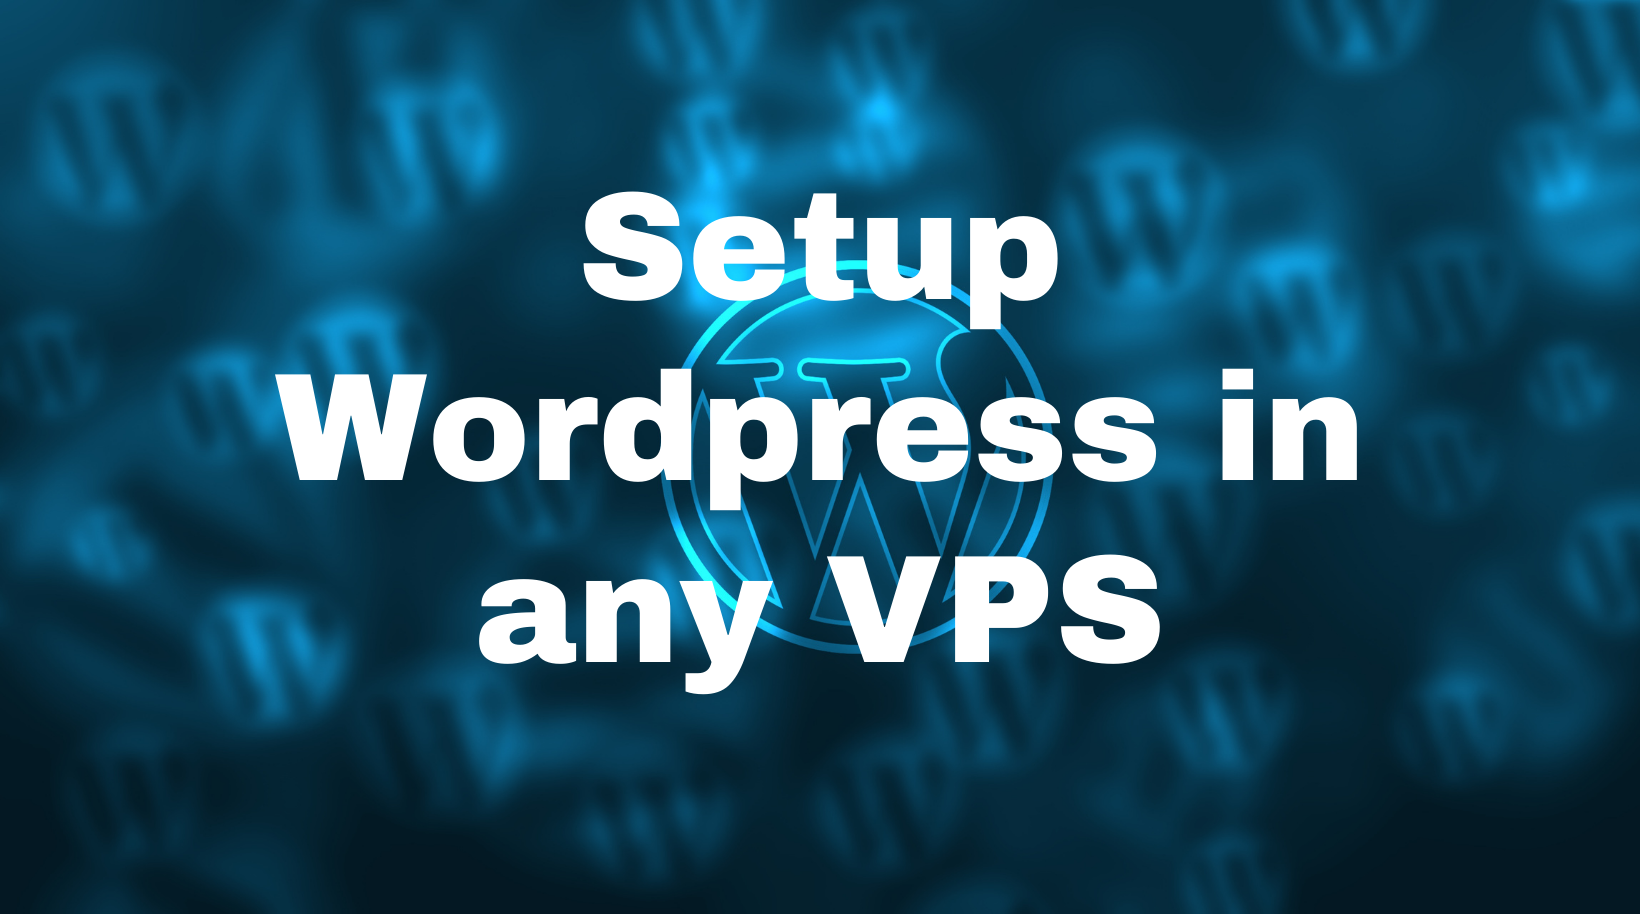 Install Wordpress your VPS server with a responsive theme and plugins without added price.